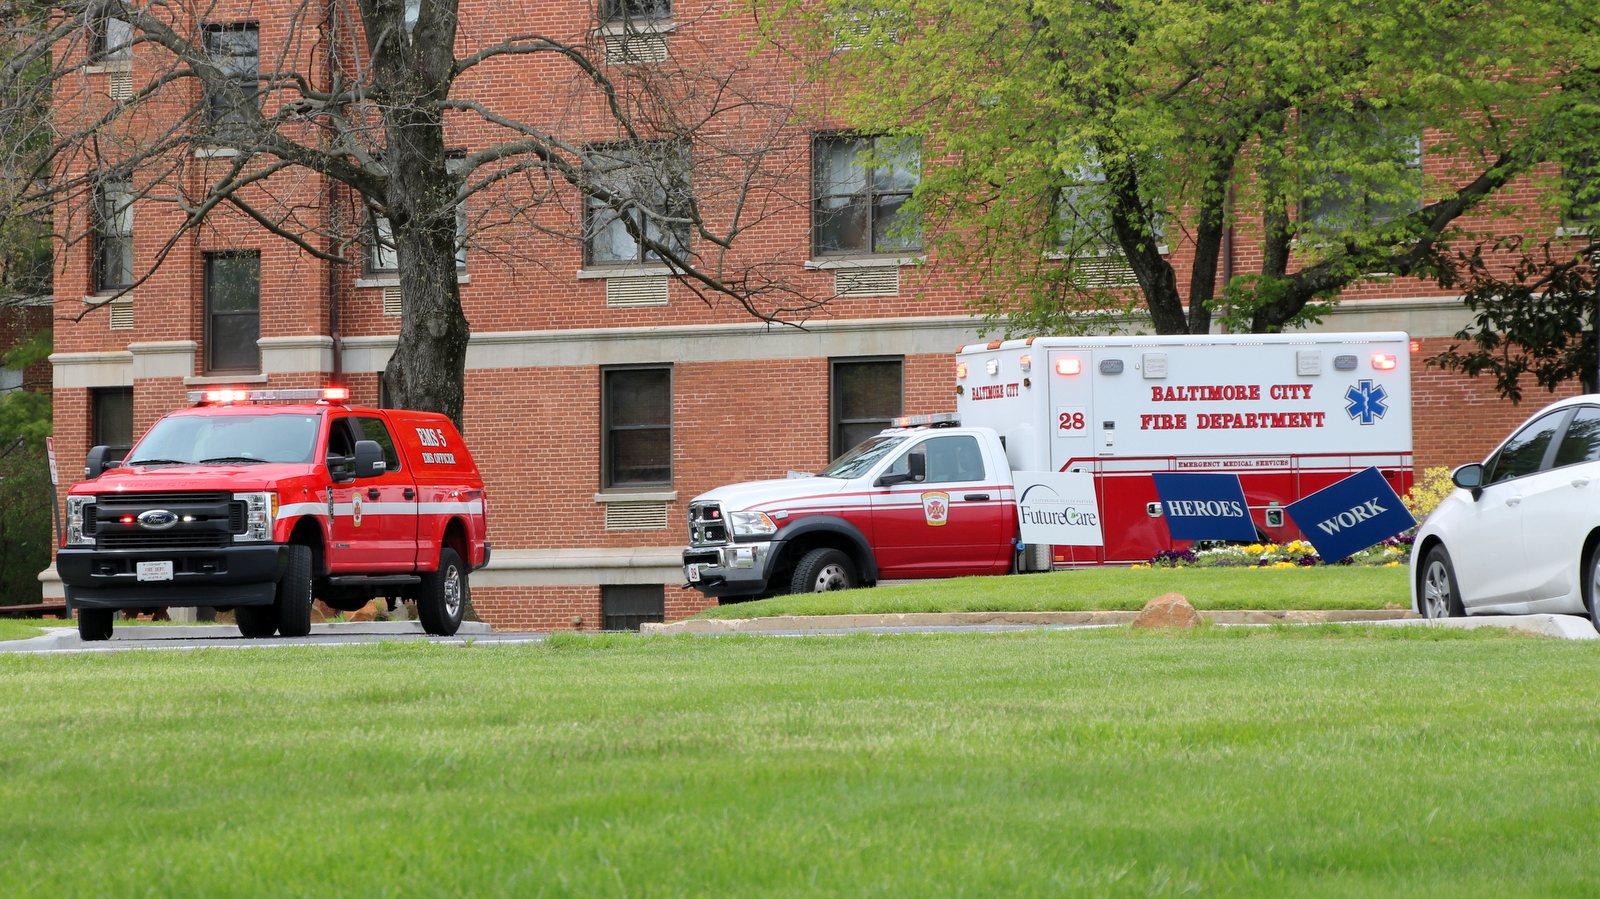 EMS vehicle and ambulance outside FutureCare Lochearn, a Baltimore nursing home with where 170 residents and staff were found Covid-positive. (Louis Krauss)